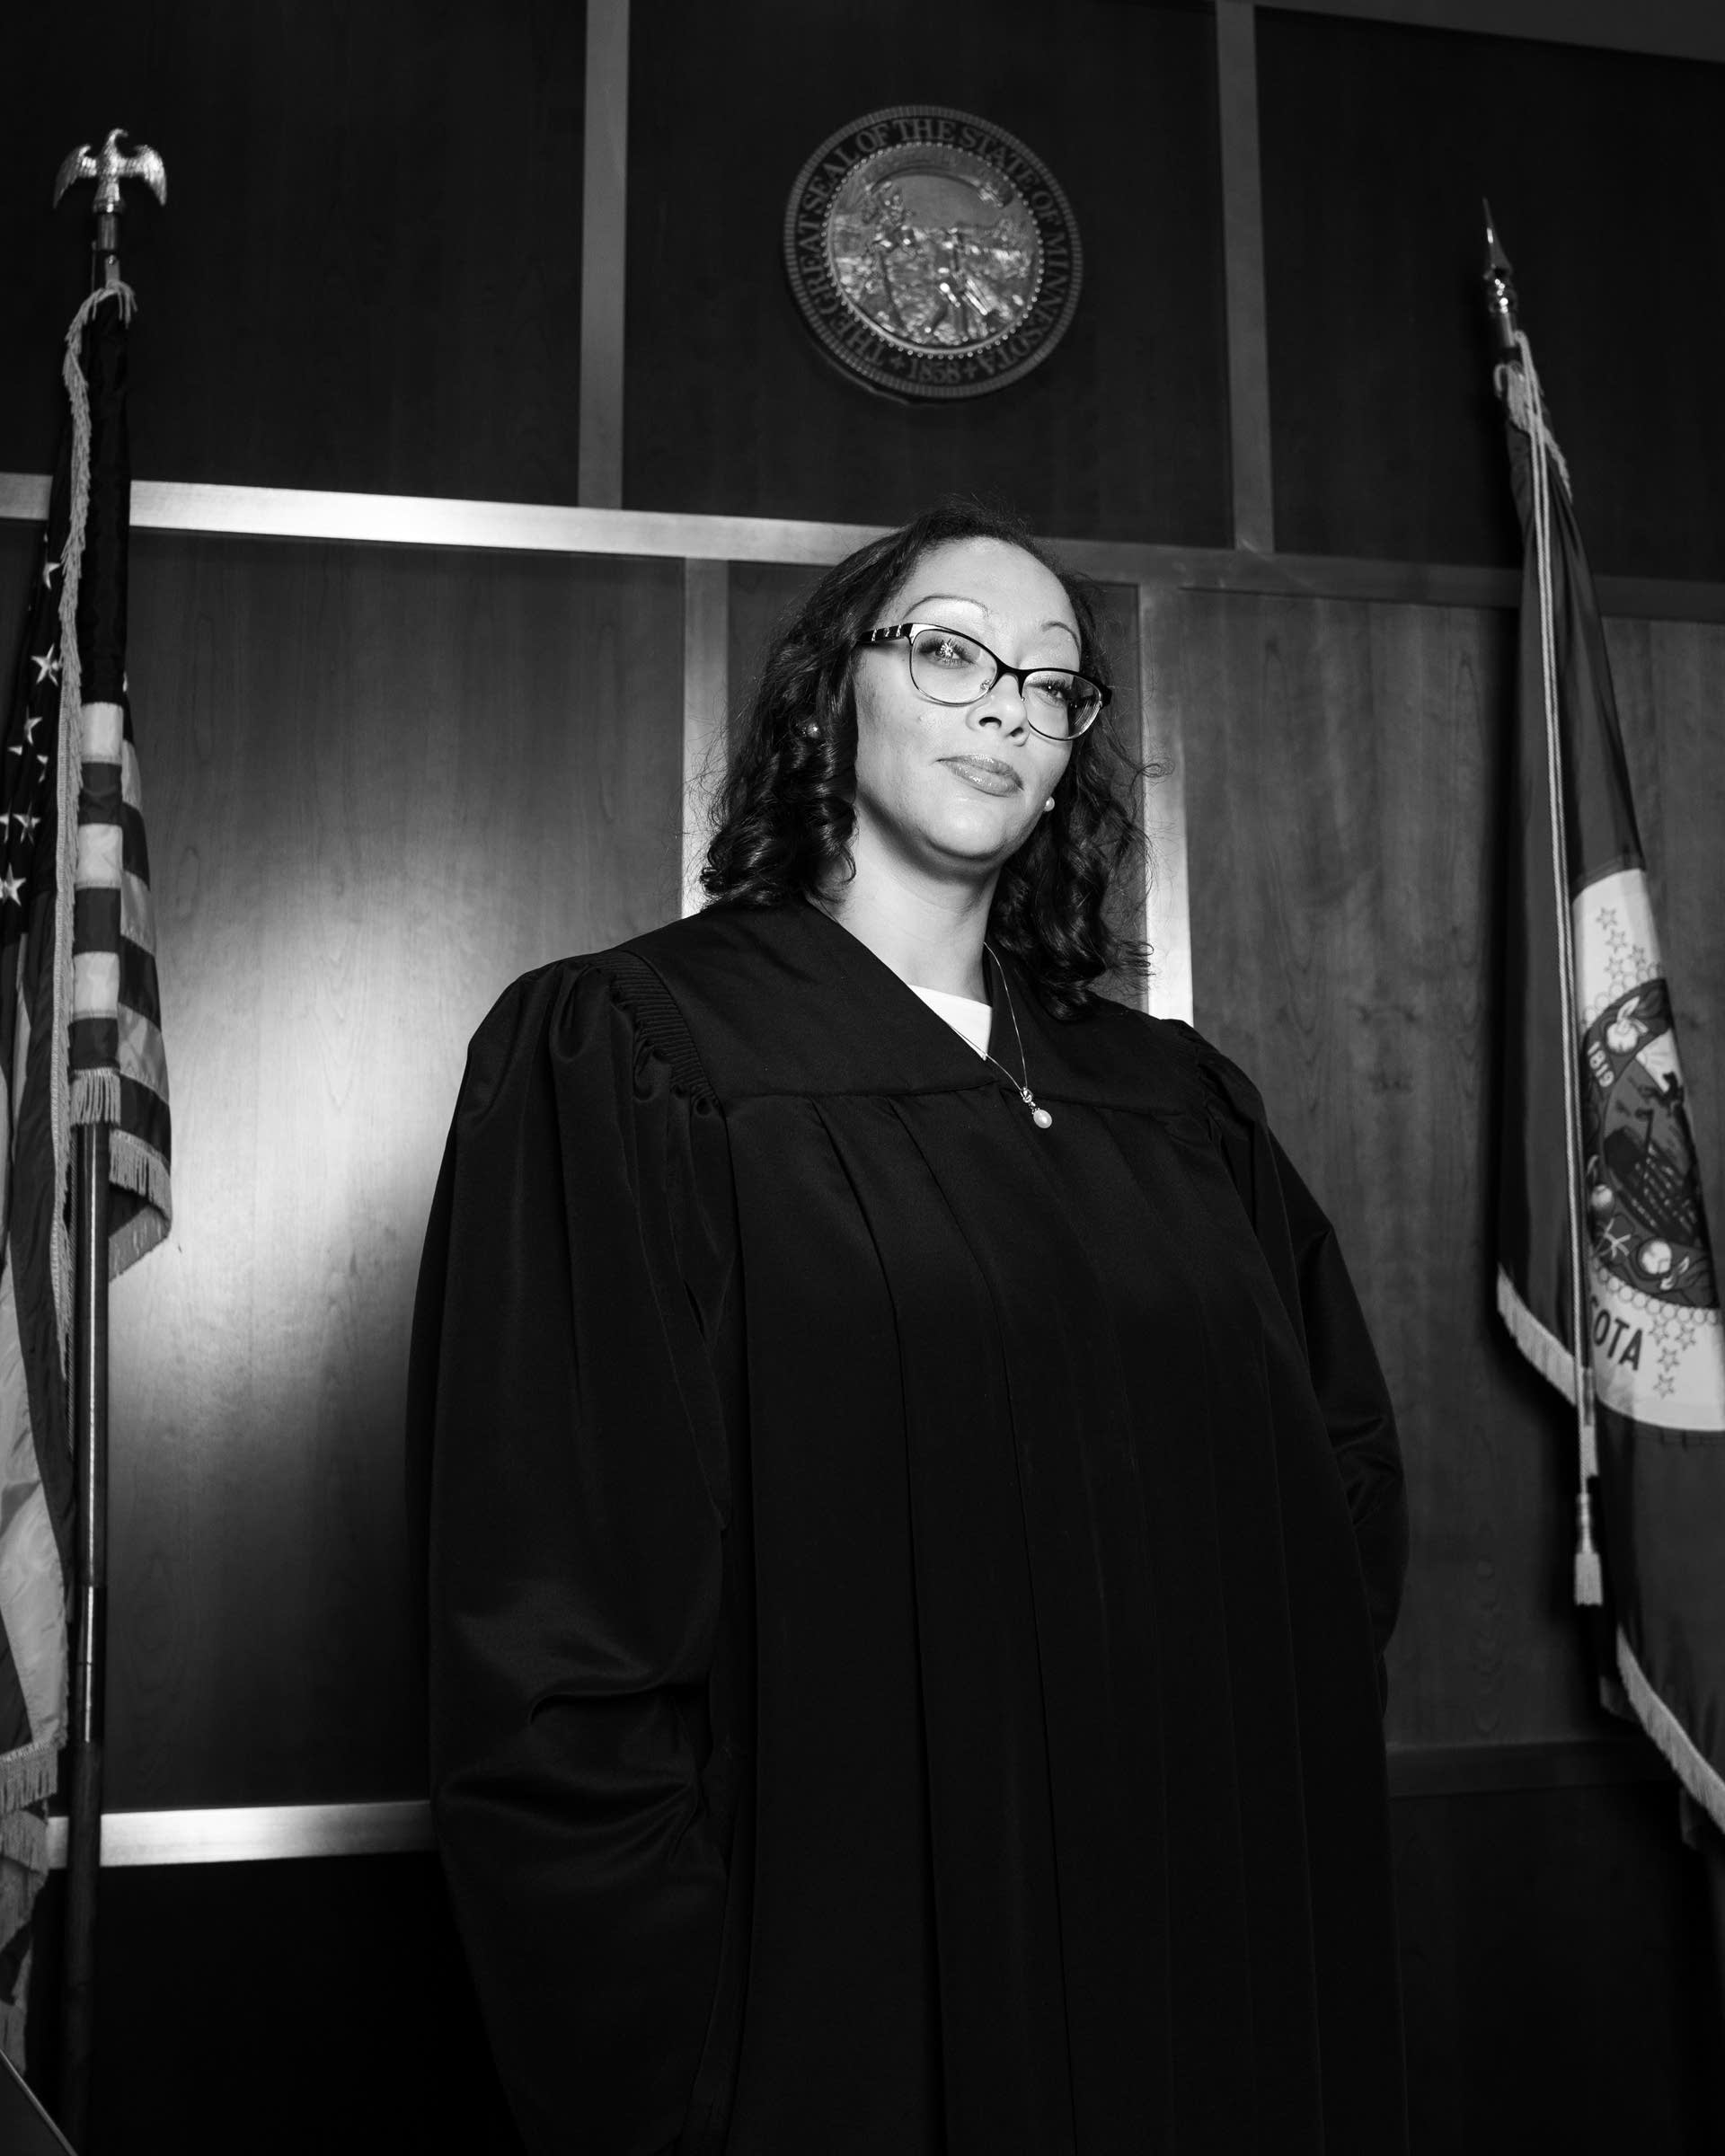 Washington County Judge Juanita Freeman stands for a portrait.